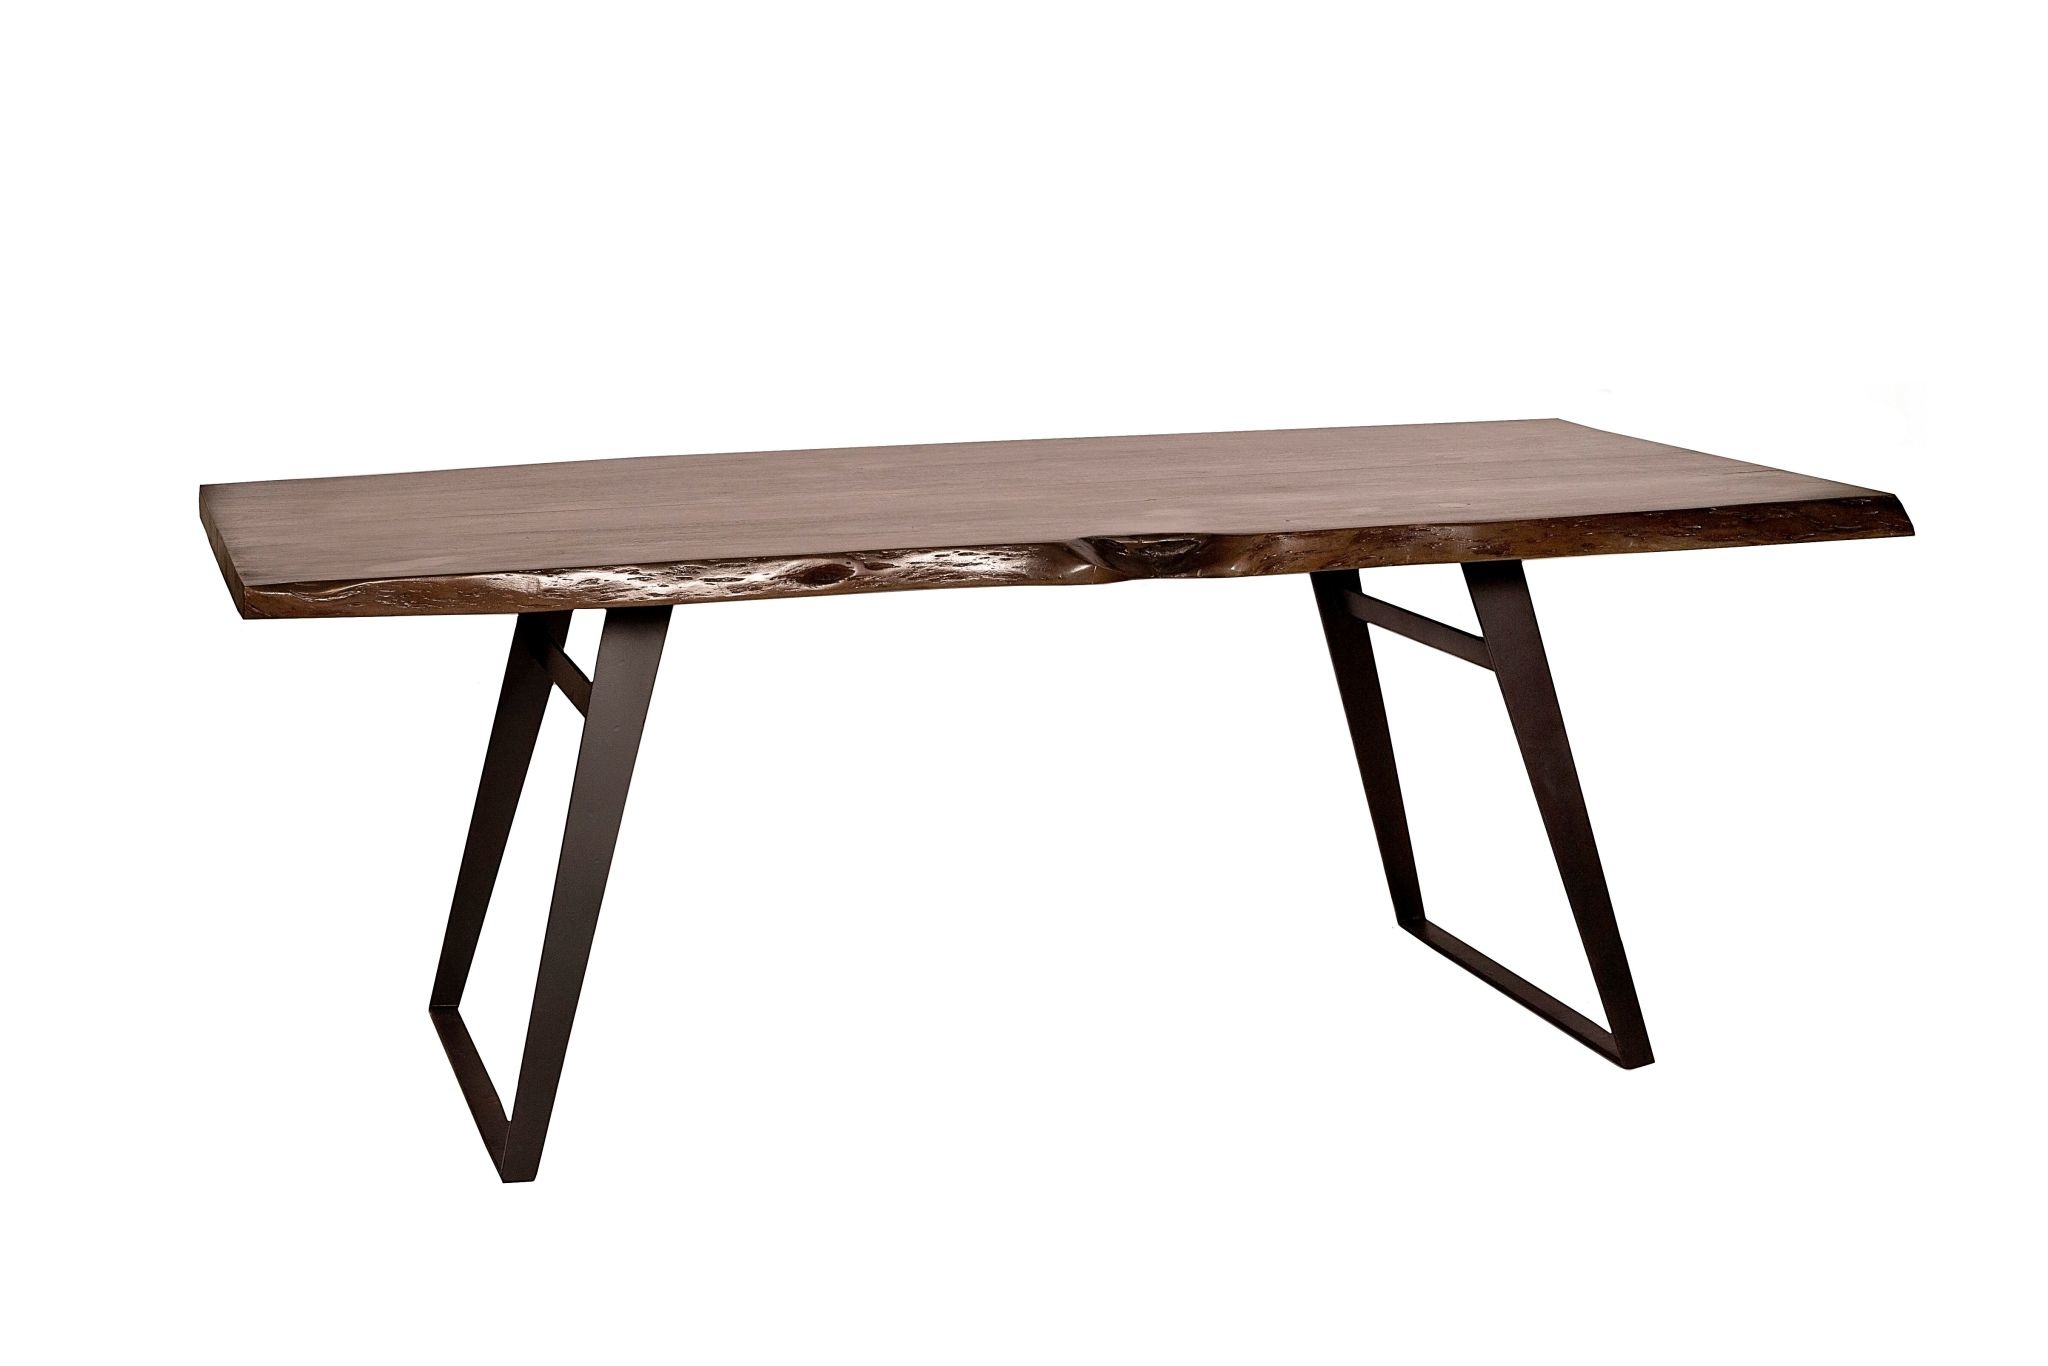 WILMINGTON DINING TABLE